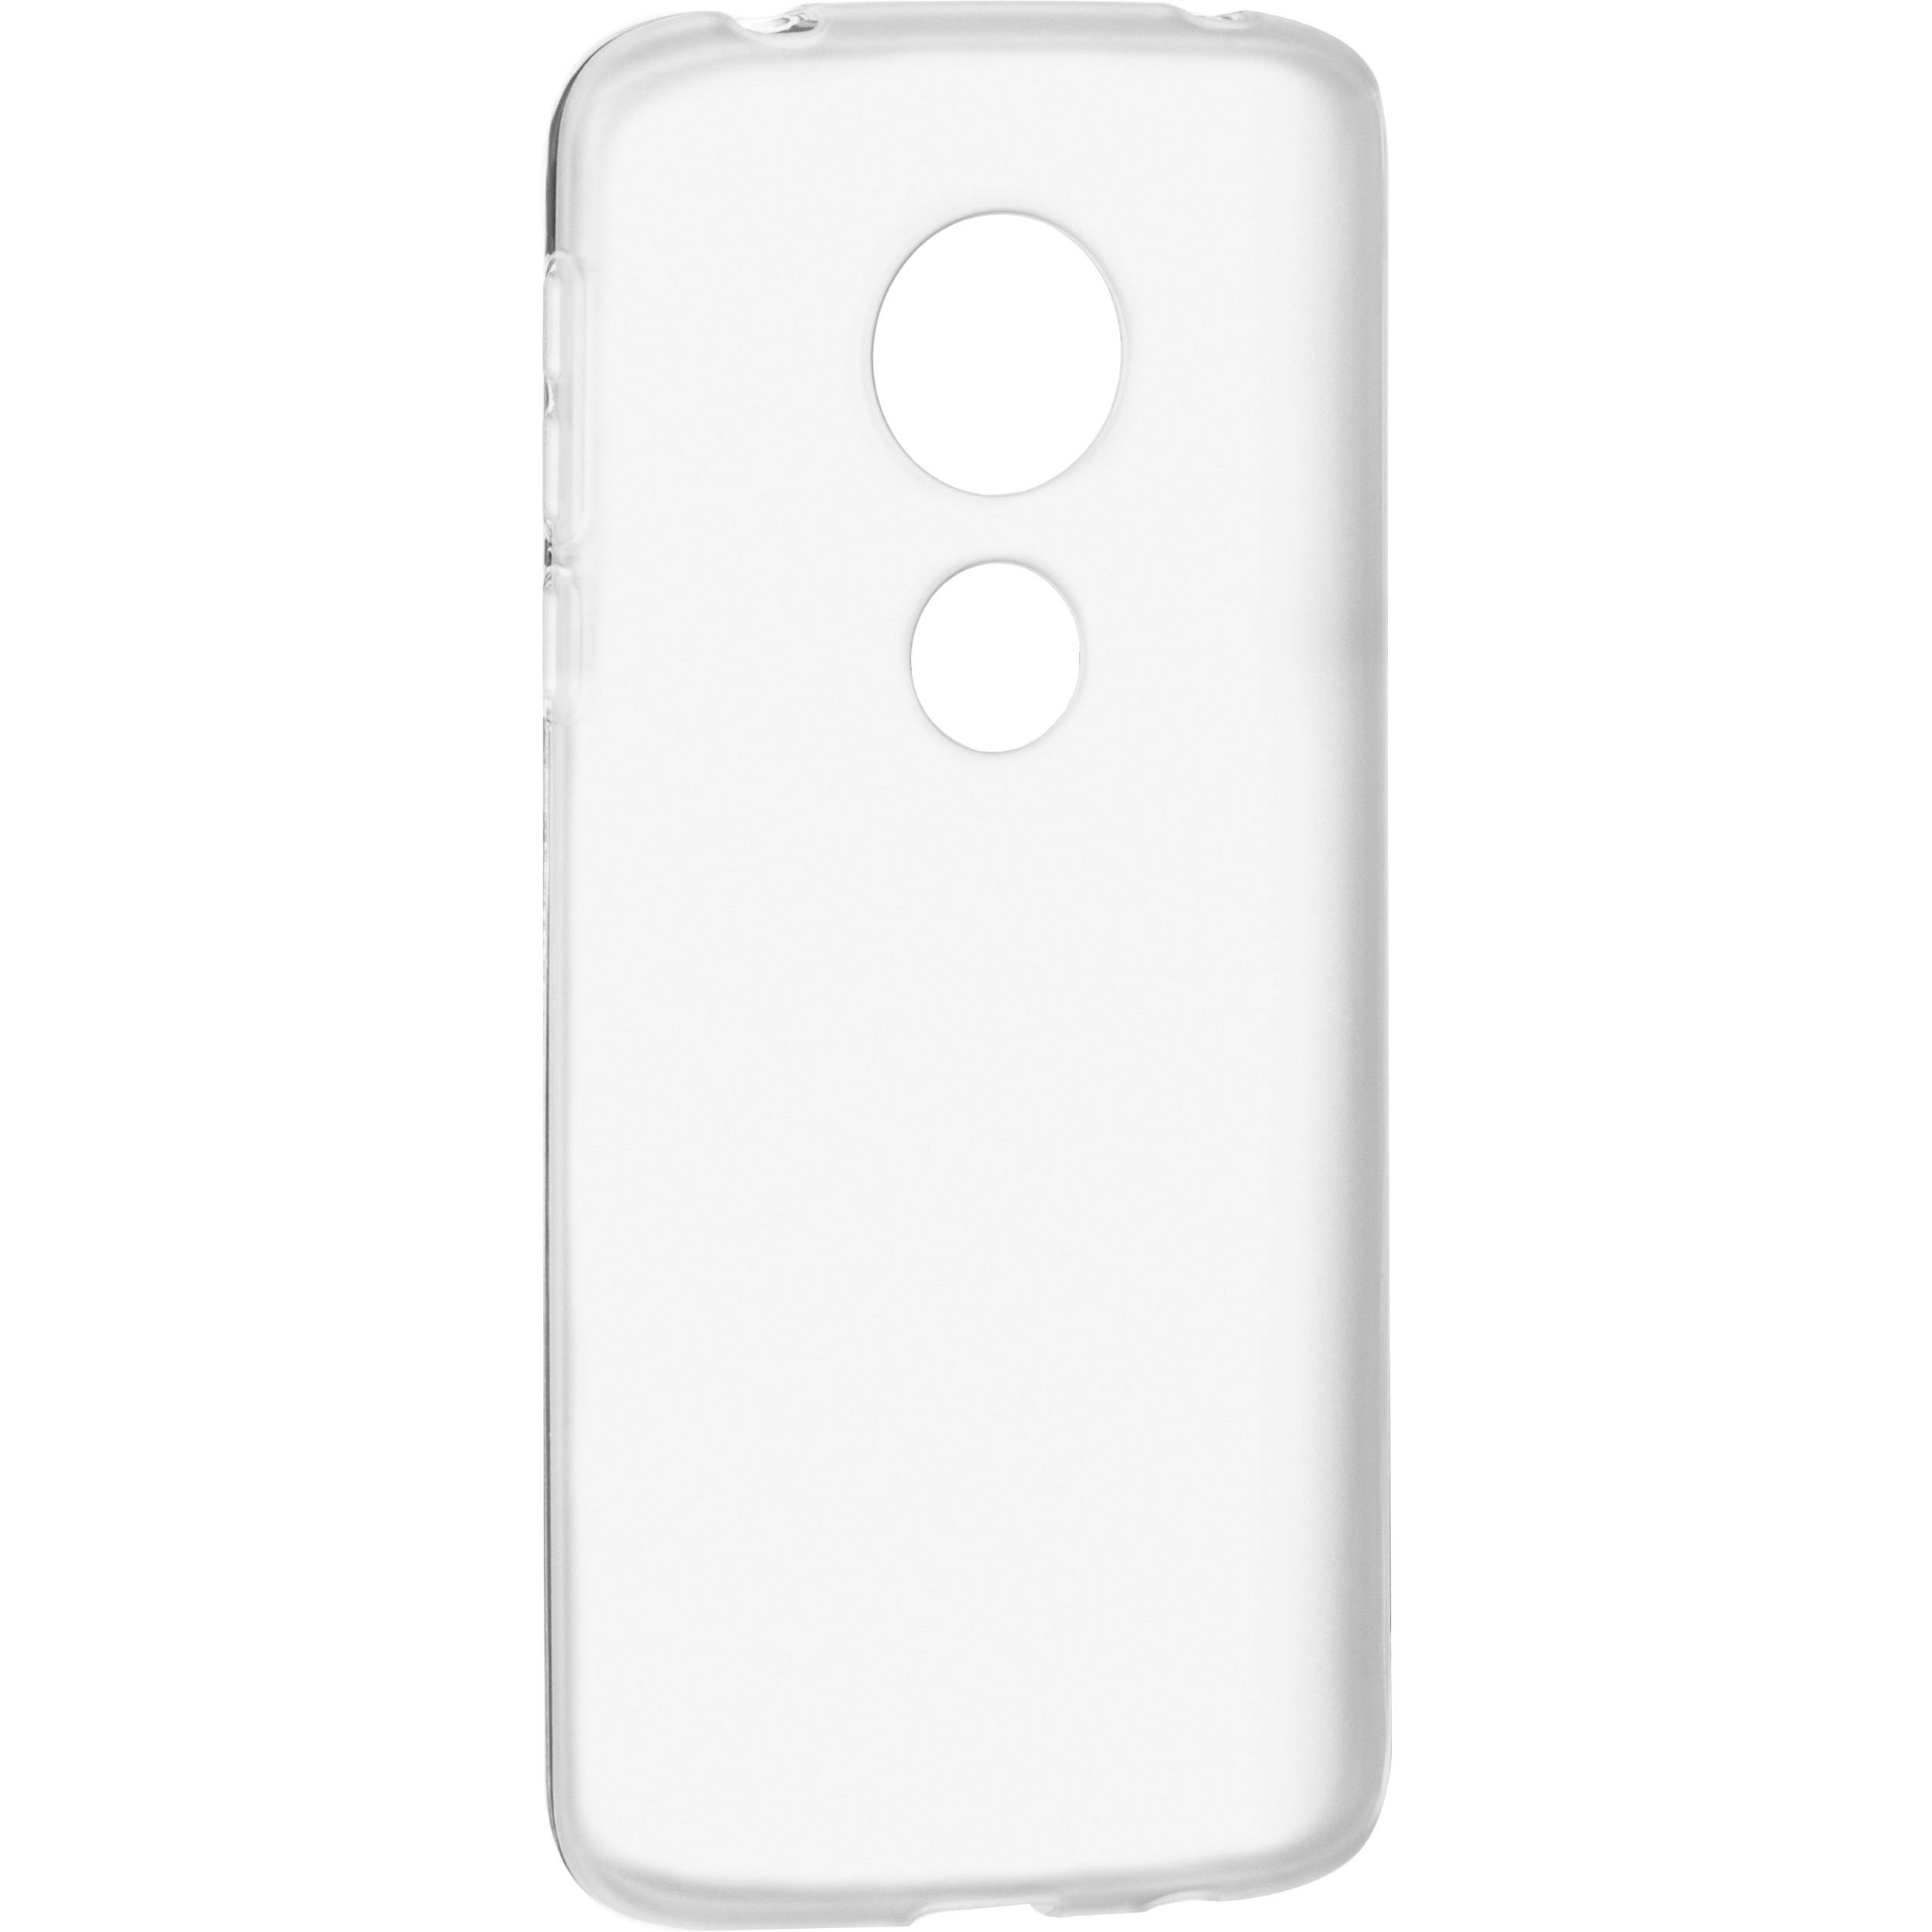 size 40 471bf 3c470 AVODA Moto G6 Case Protector (Frosted)